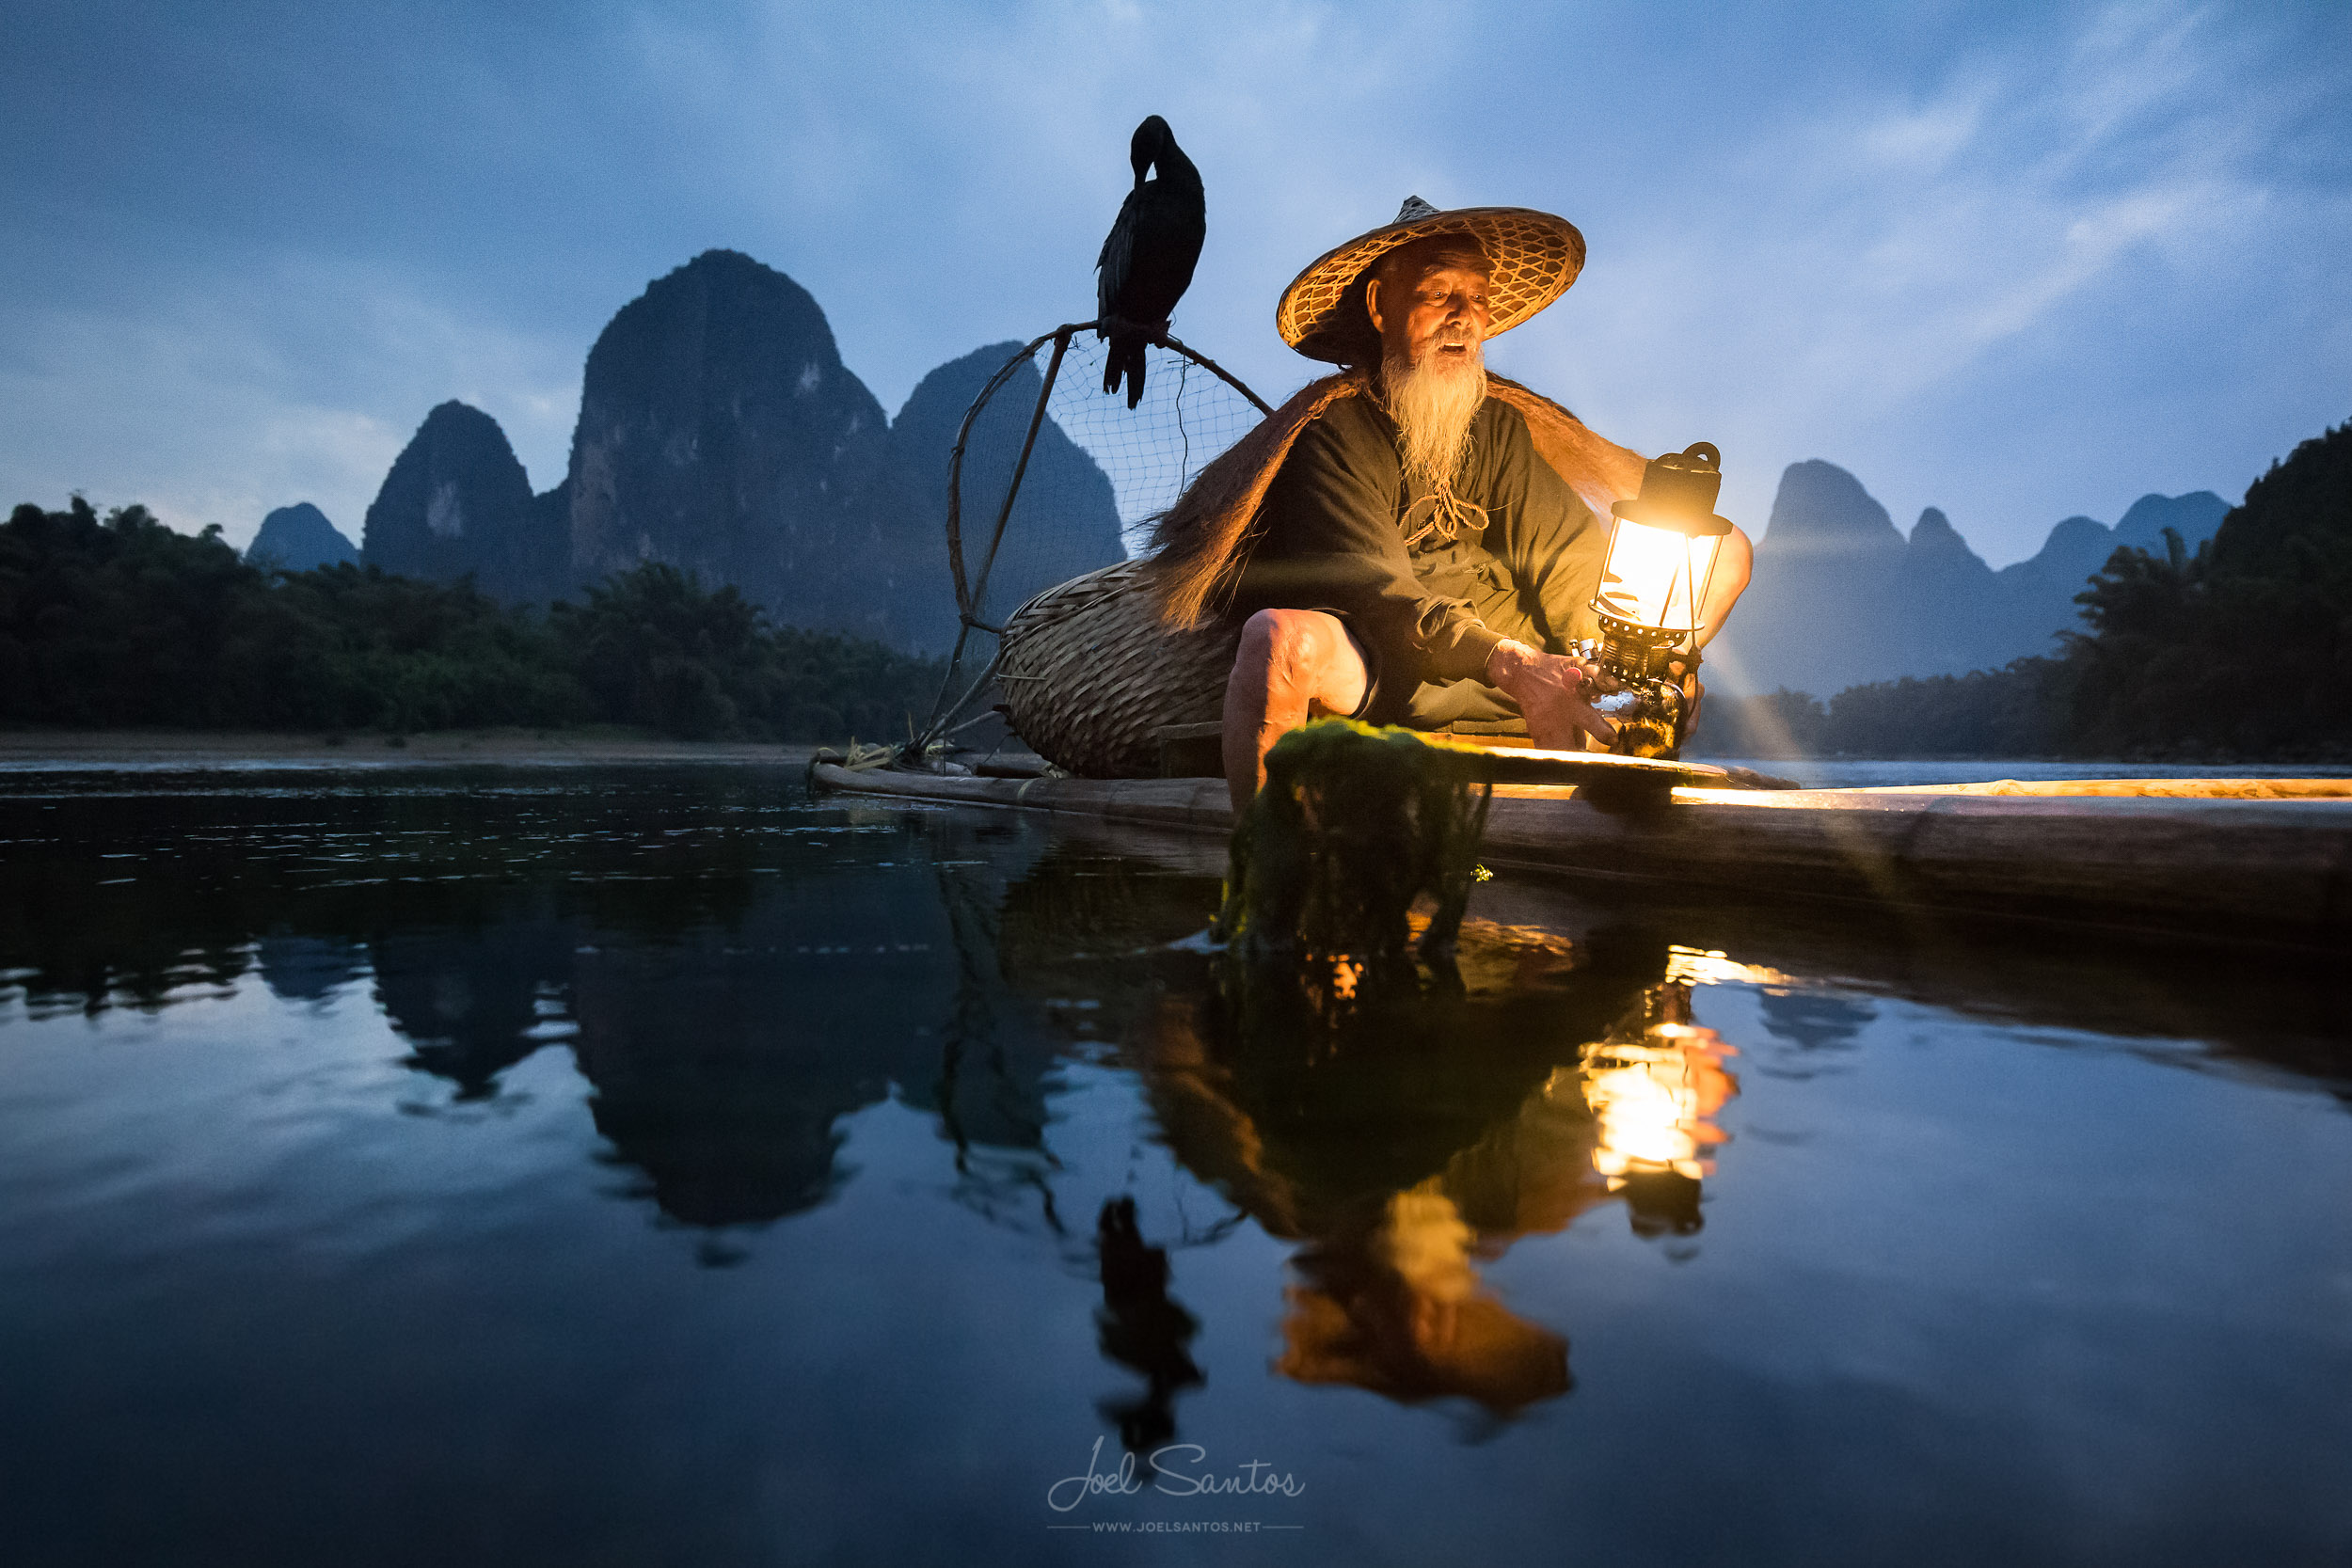 FISHERMEN - ANCIENT TRADITIONS THAT ARE FADING AWAY